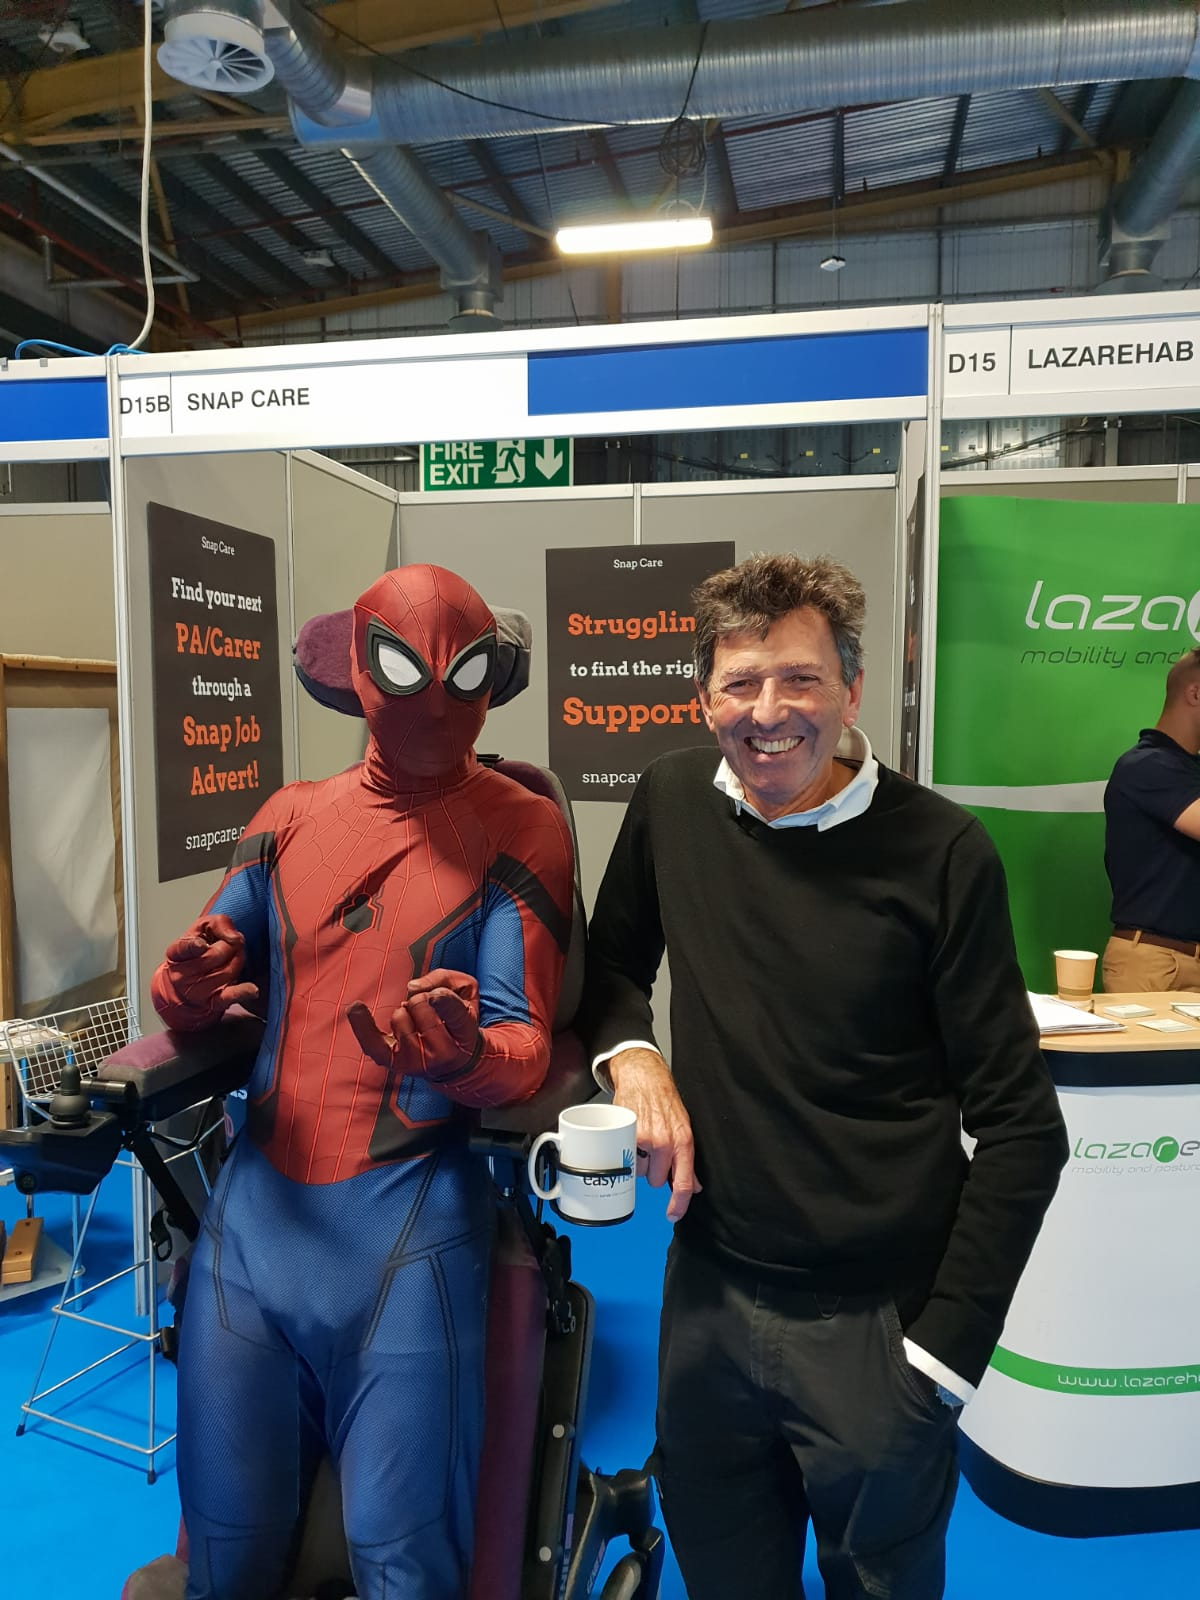 Andrew and Spiderman at Kidz to Adultz